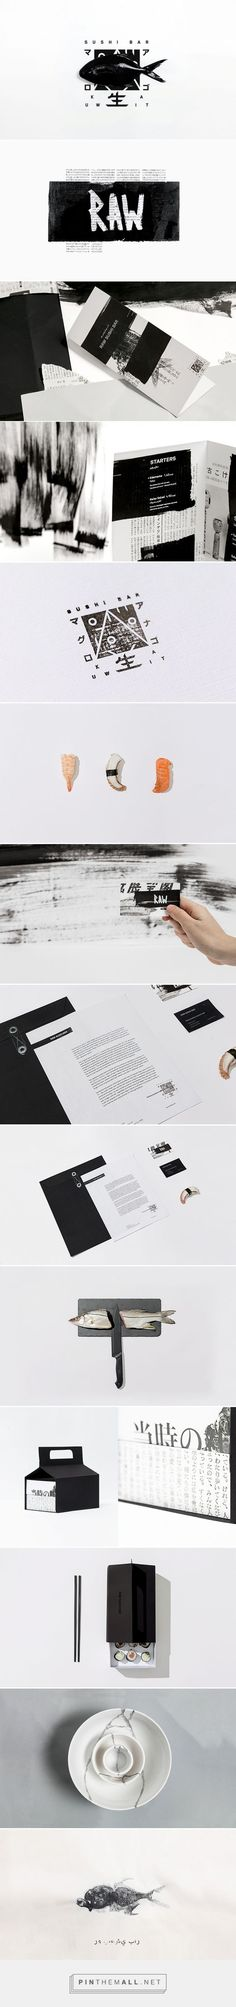 dans-ta-pub-creation-brand-identity-compilation-11 #design #branding